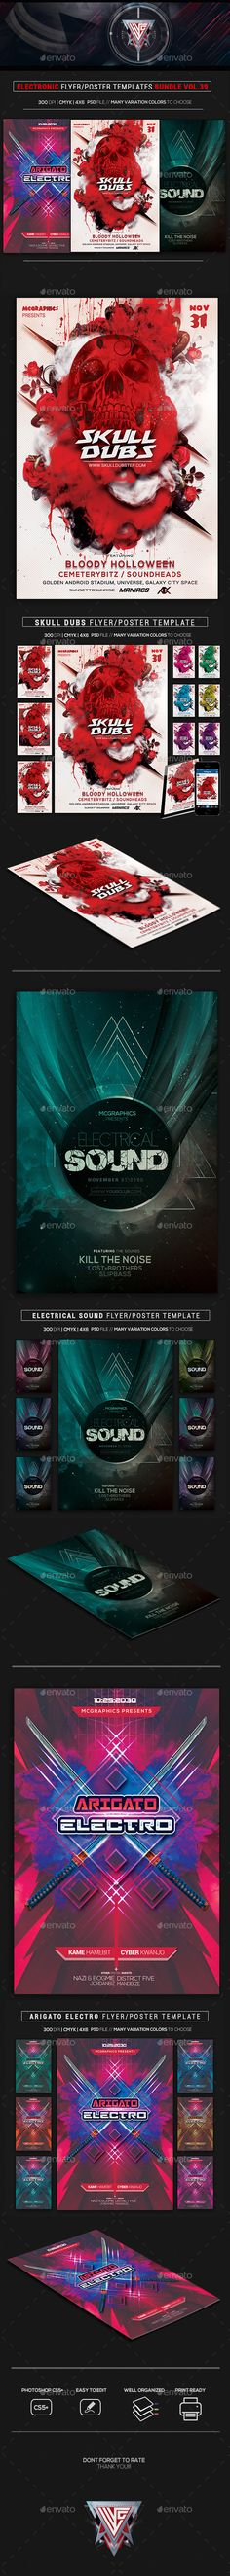 Electro Music #Flyer Bundle Vol. 39 - Flyers Print Templates Download here:  https://graphicriver.net/item/electro-music-flyer-bundle-vol-39/19631800?ref=alena994